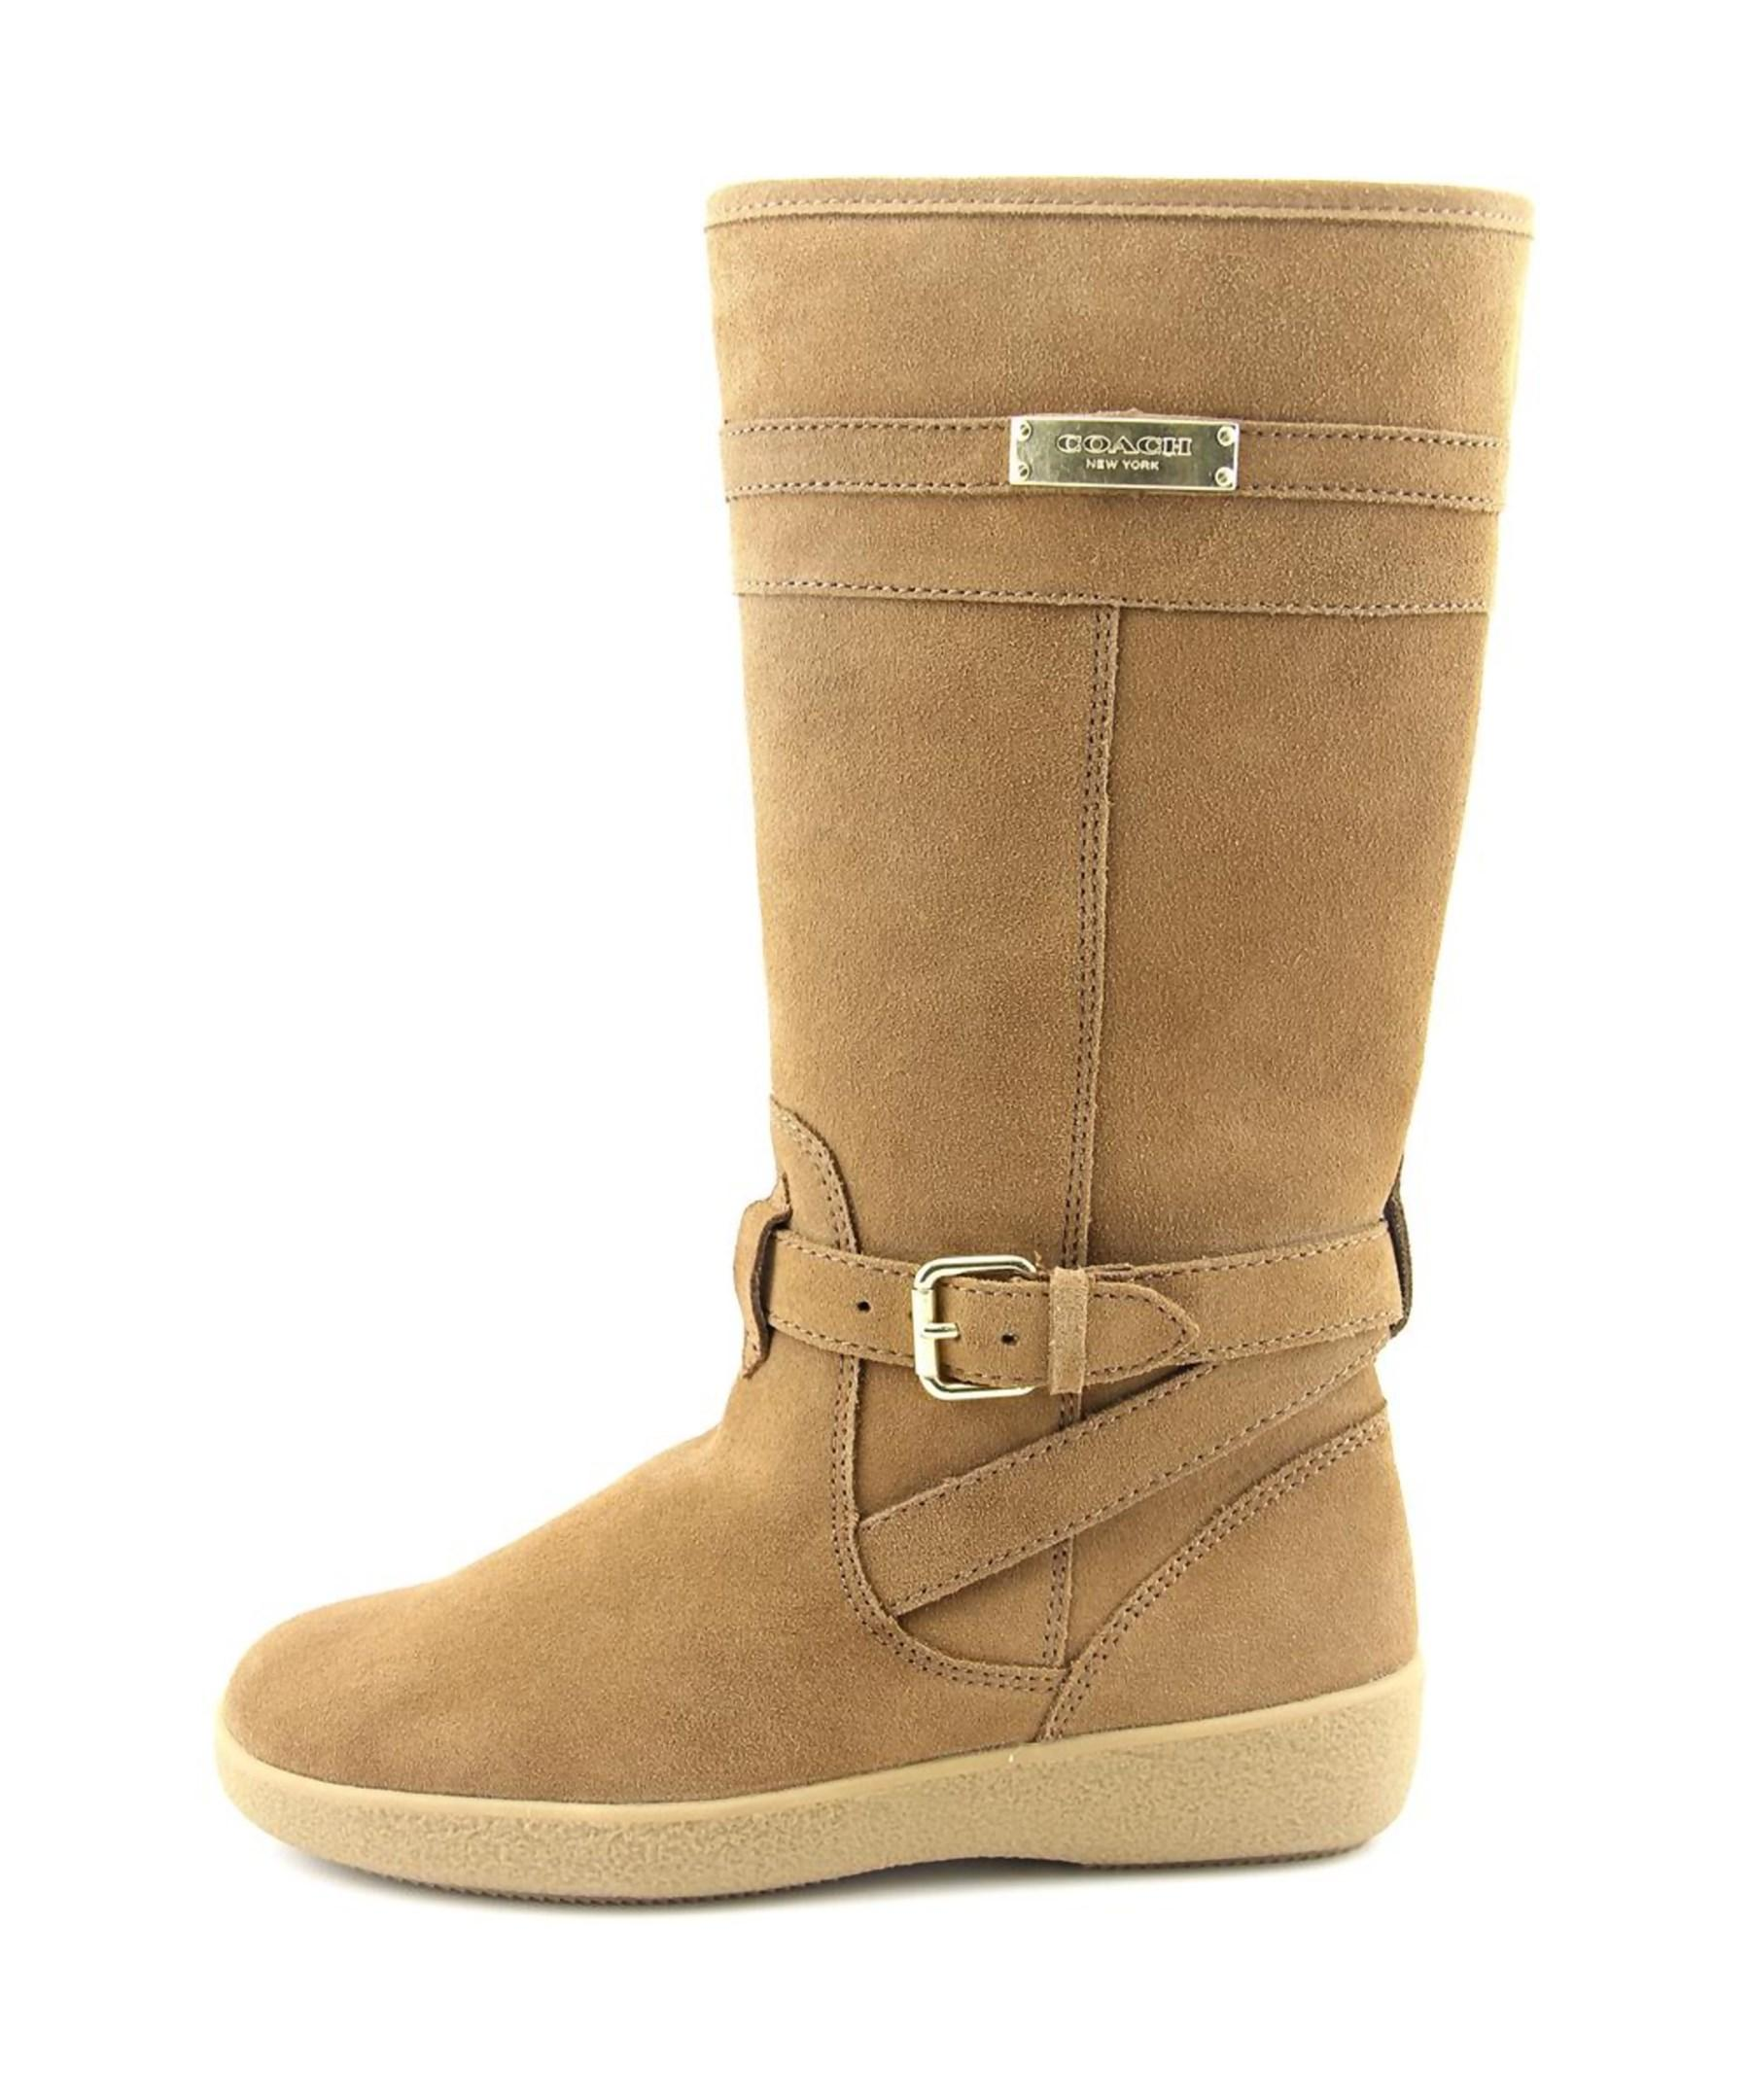 coach tallulah toe suede knee high boot in